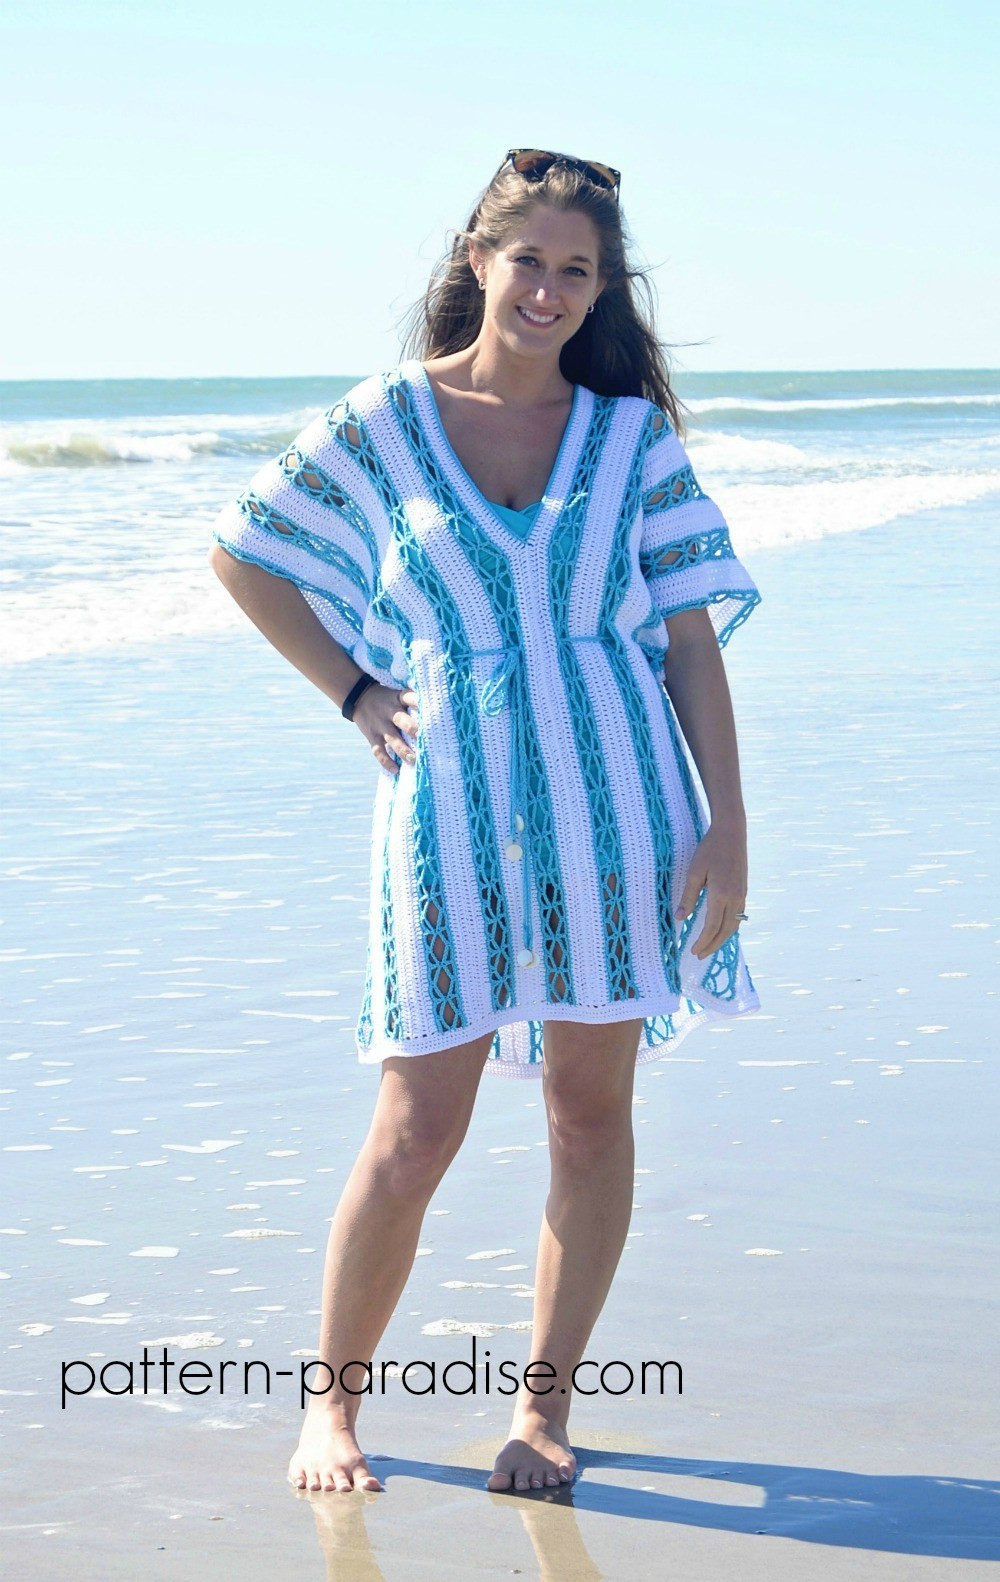 Inspirational Celebratemomcal – Beach Day Cover Up Tunic Crochet Beach Cover Ups Patterns Of Beautiful 40 Models Crochet Beach Cover Ups Patterns